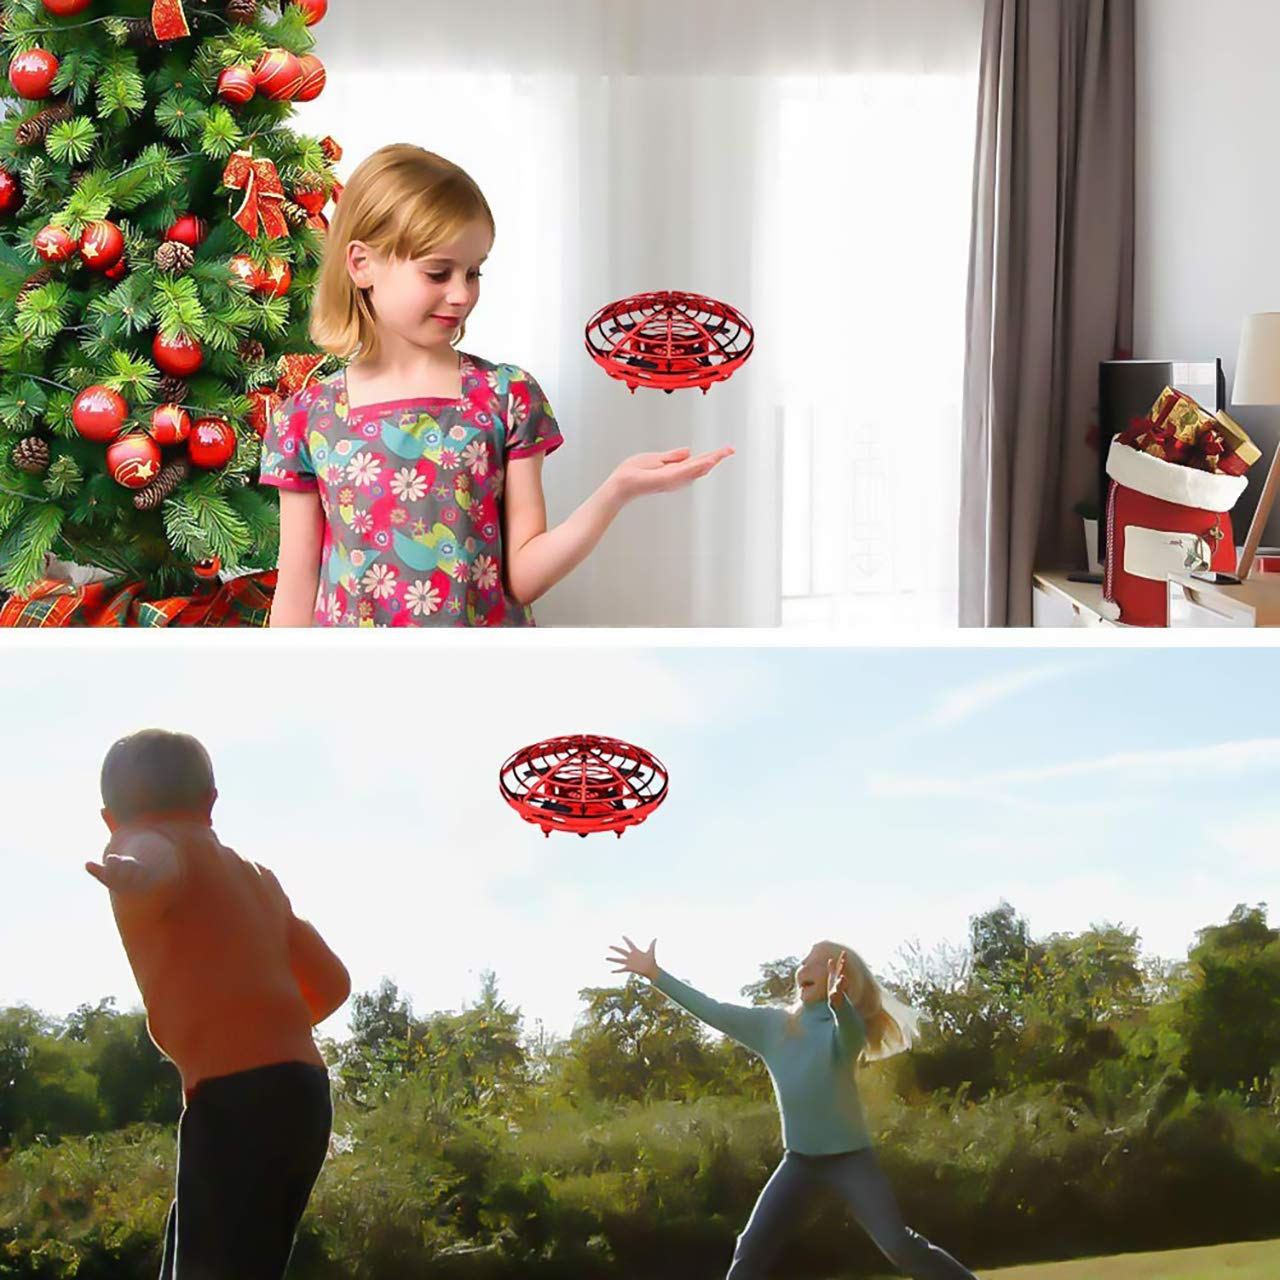 MuD-A Flying Ball Toy Drones,Hand Operated Drones for Kids or Adults - Scoot Flying Ball Drone,with 360°Rotating and Flashing LED Lights Mini Drone,for Boys and Girls, Kids Gifts (Red) by MuD-A (Image #6)